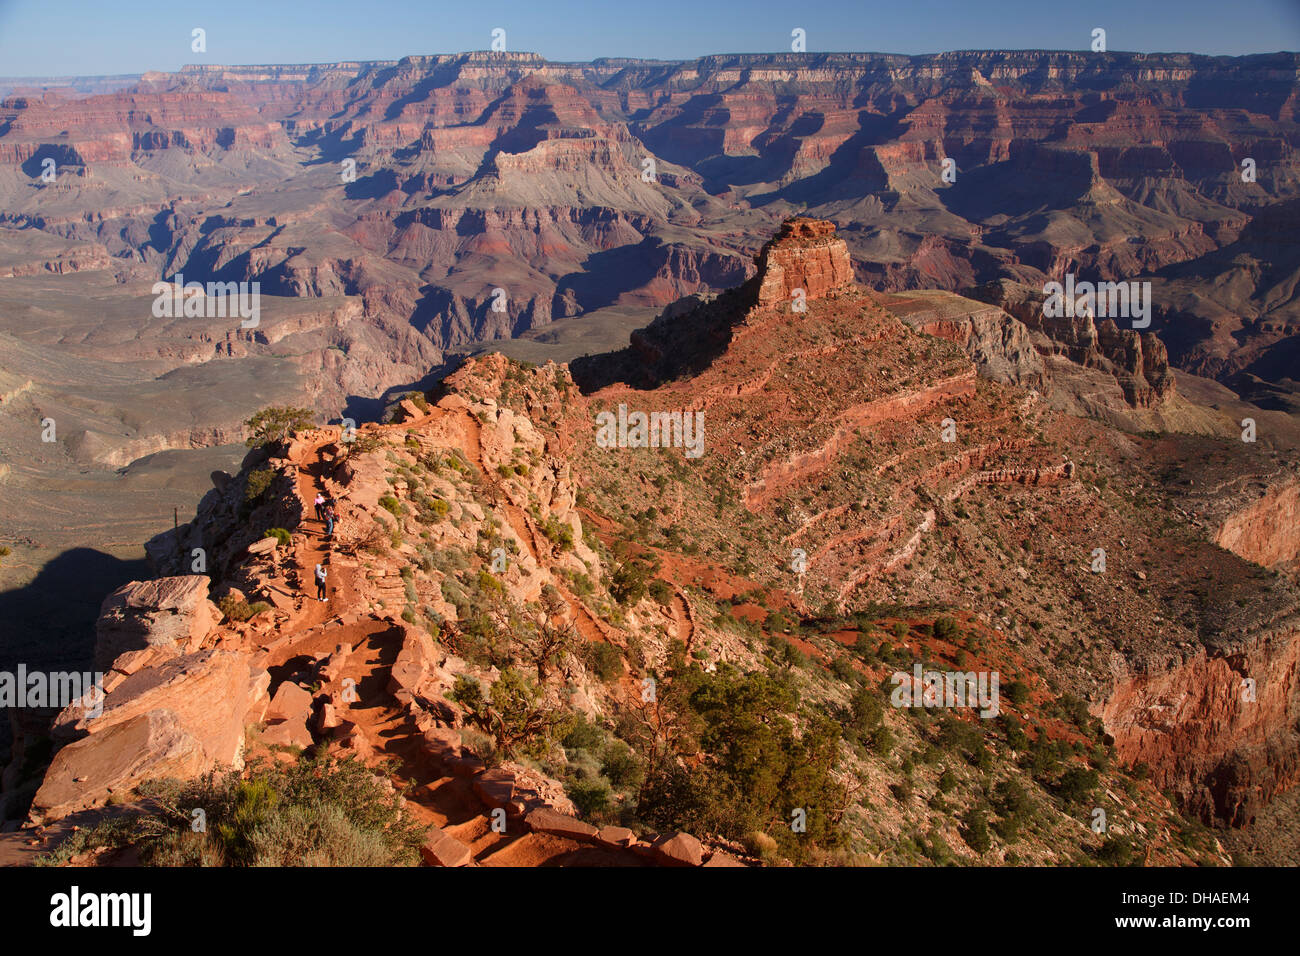 View from Ooh-ahh Point, South Kaibab Trail, Grand Canyon National Park, Arizona. - Stock Image